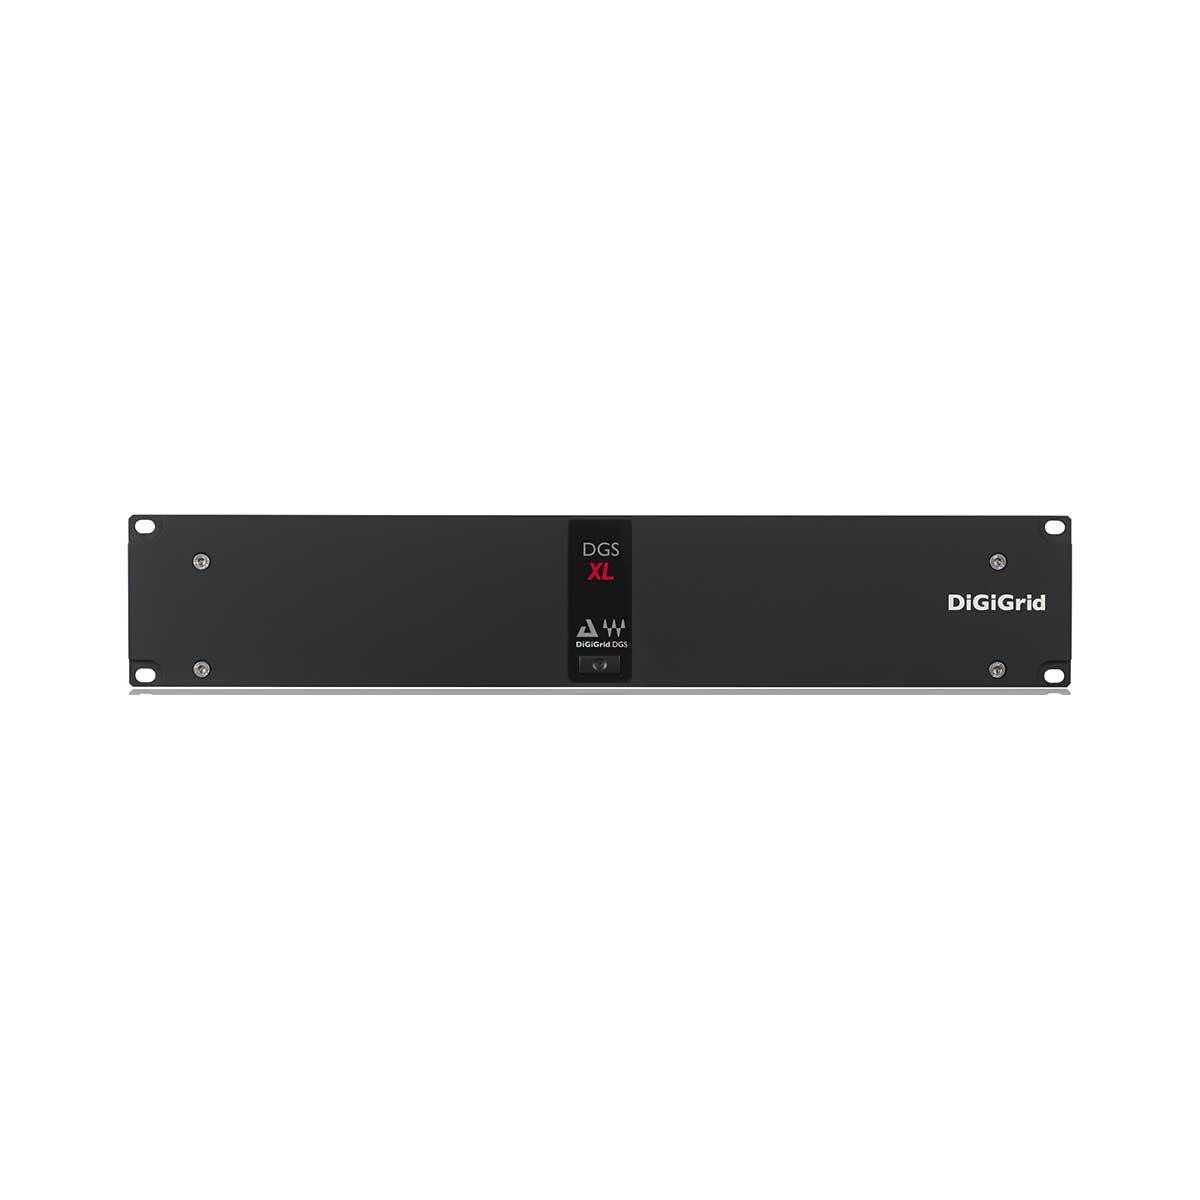 DSP Hardware - DiGiGrid DGS-XL Stand-alone I7v3 Extreme SoundGrid DSP Server With Integrated 4 Port PoE Switch